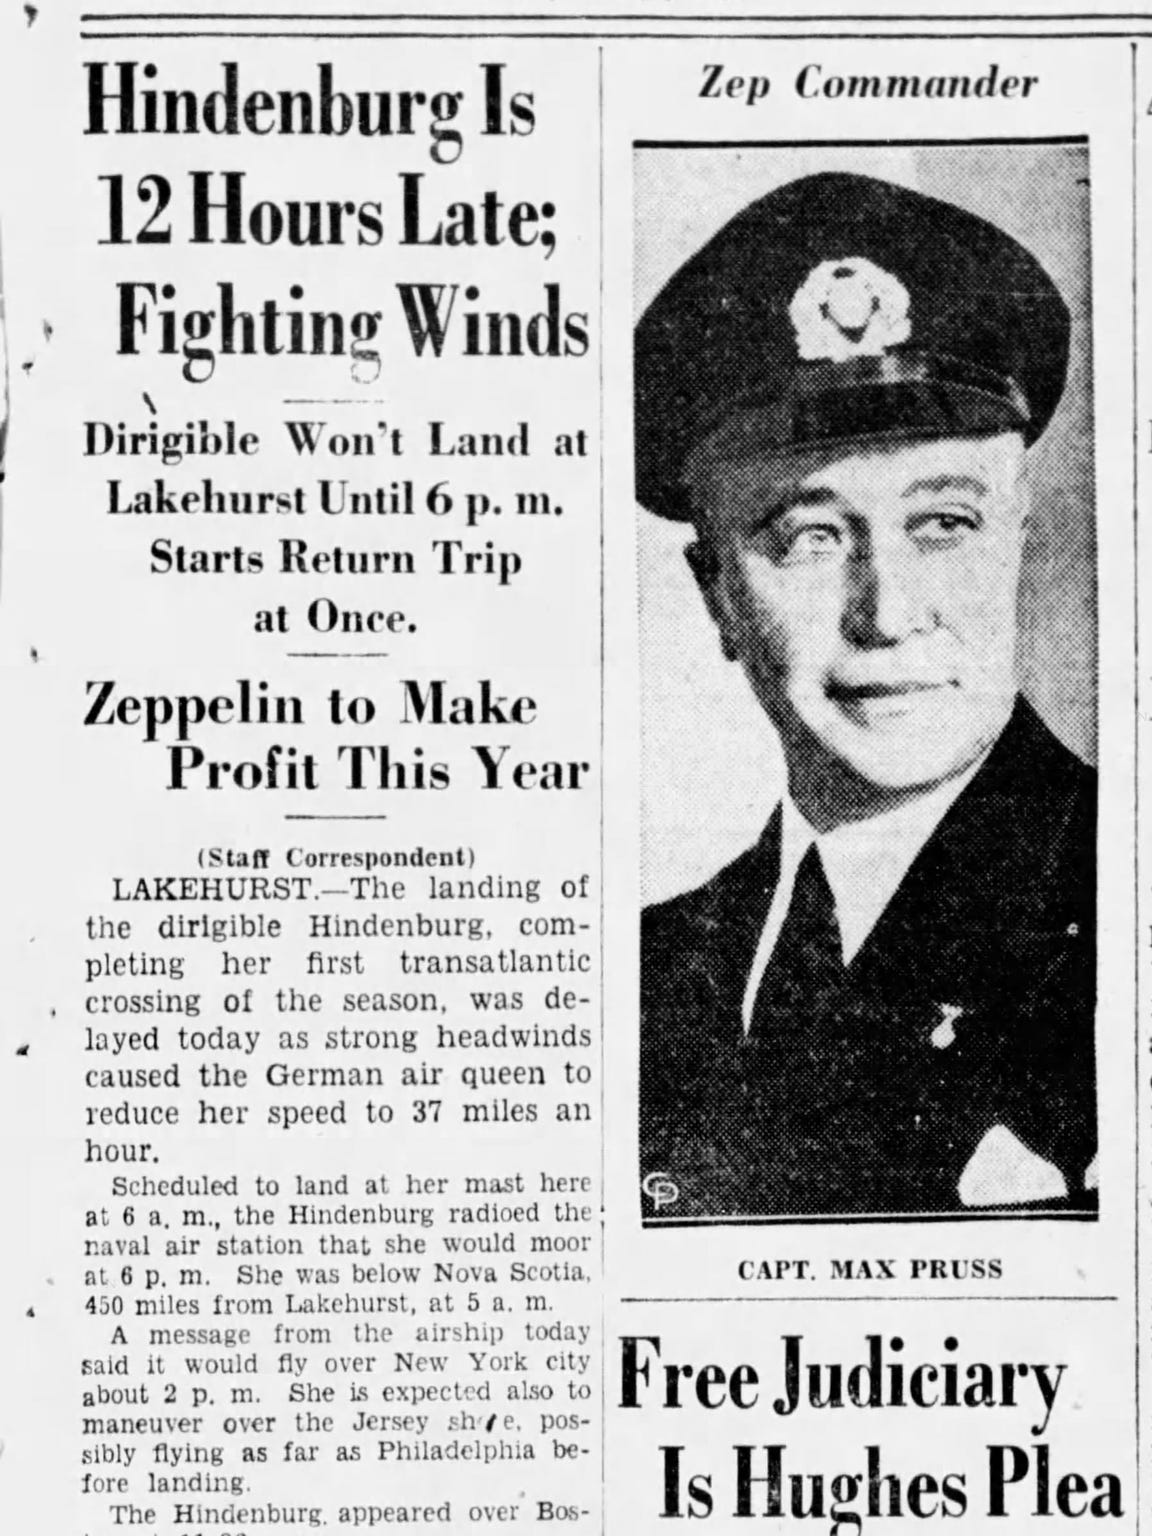 Asbury Park Press front page article from May 6, 1937,